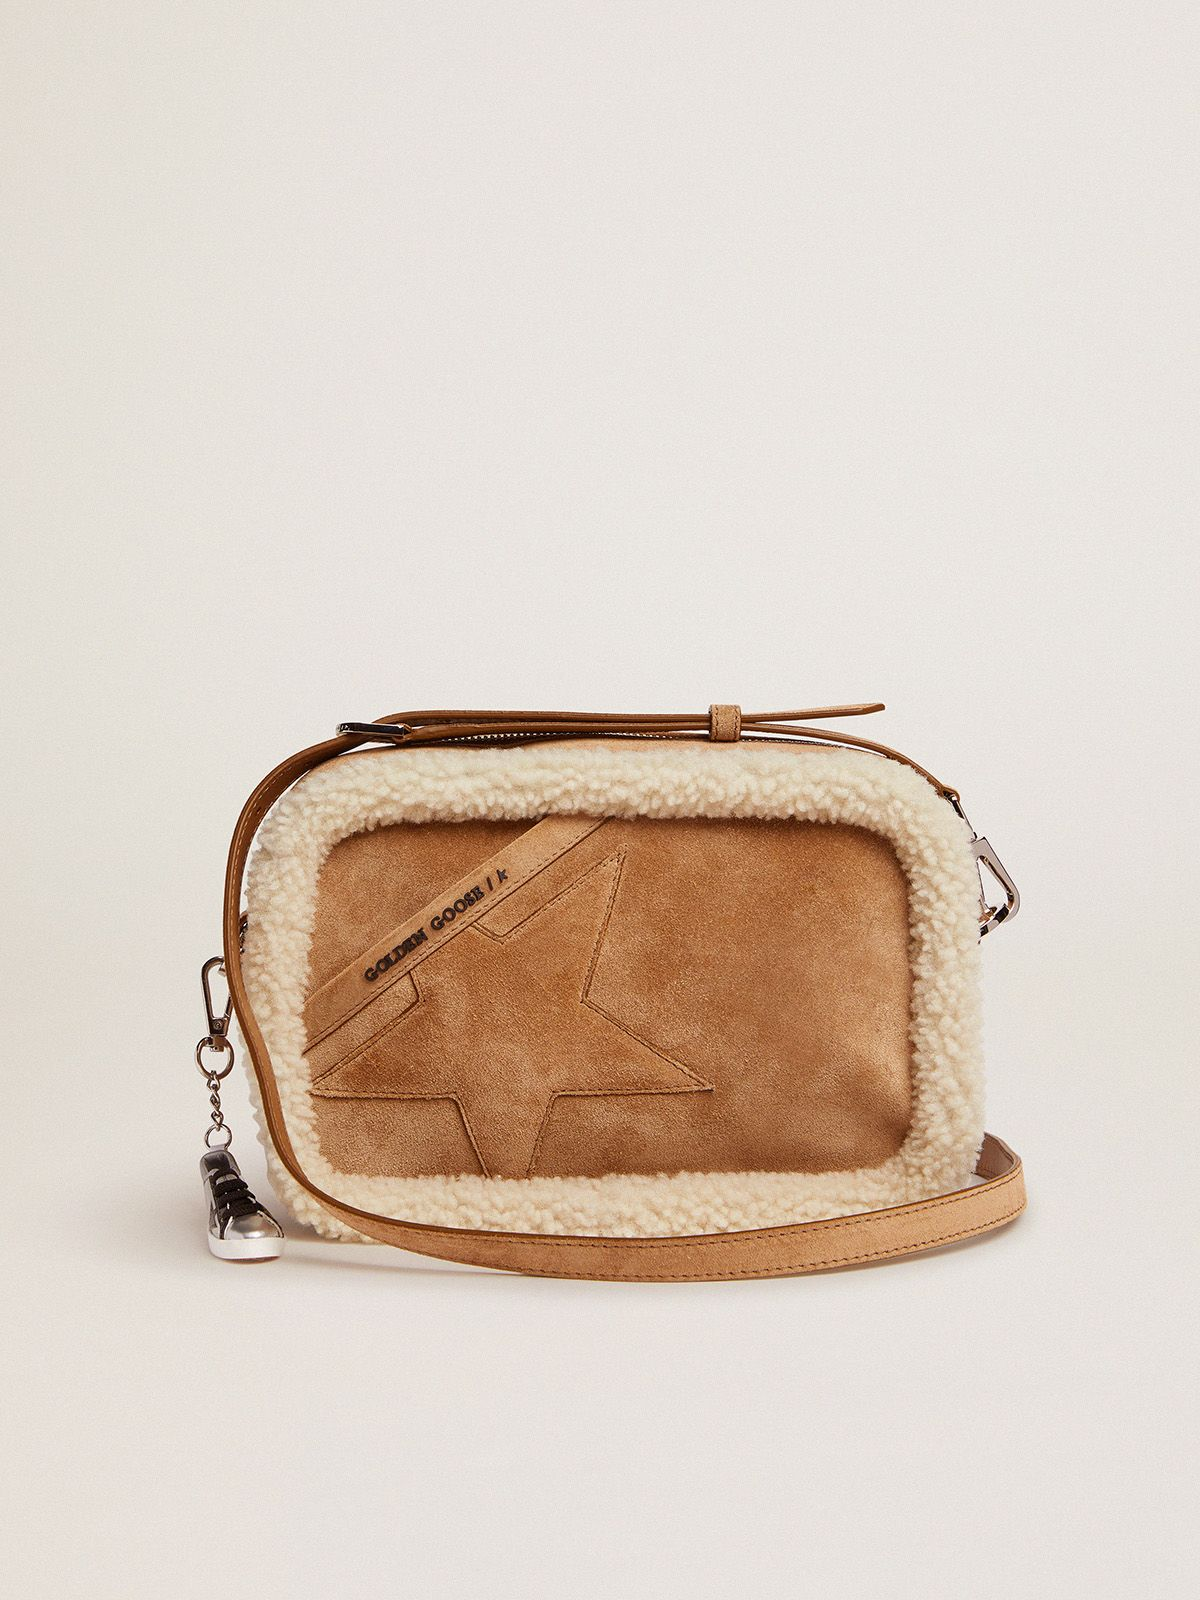 Star Bag made of suede leather with shearling edging